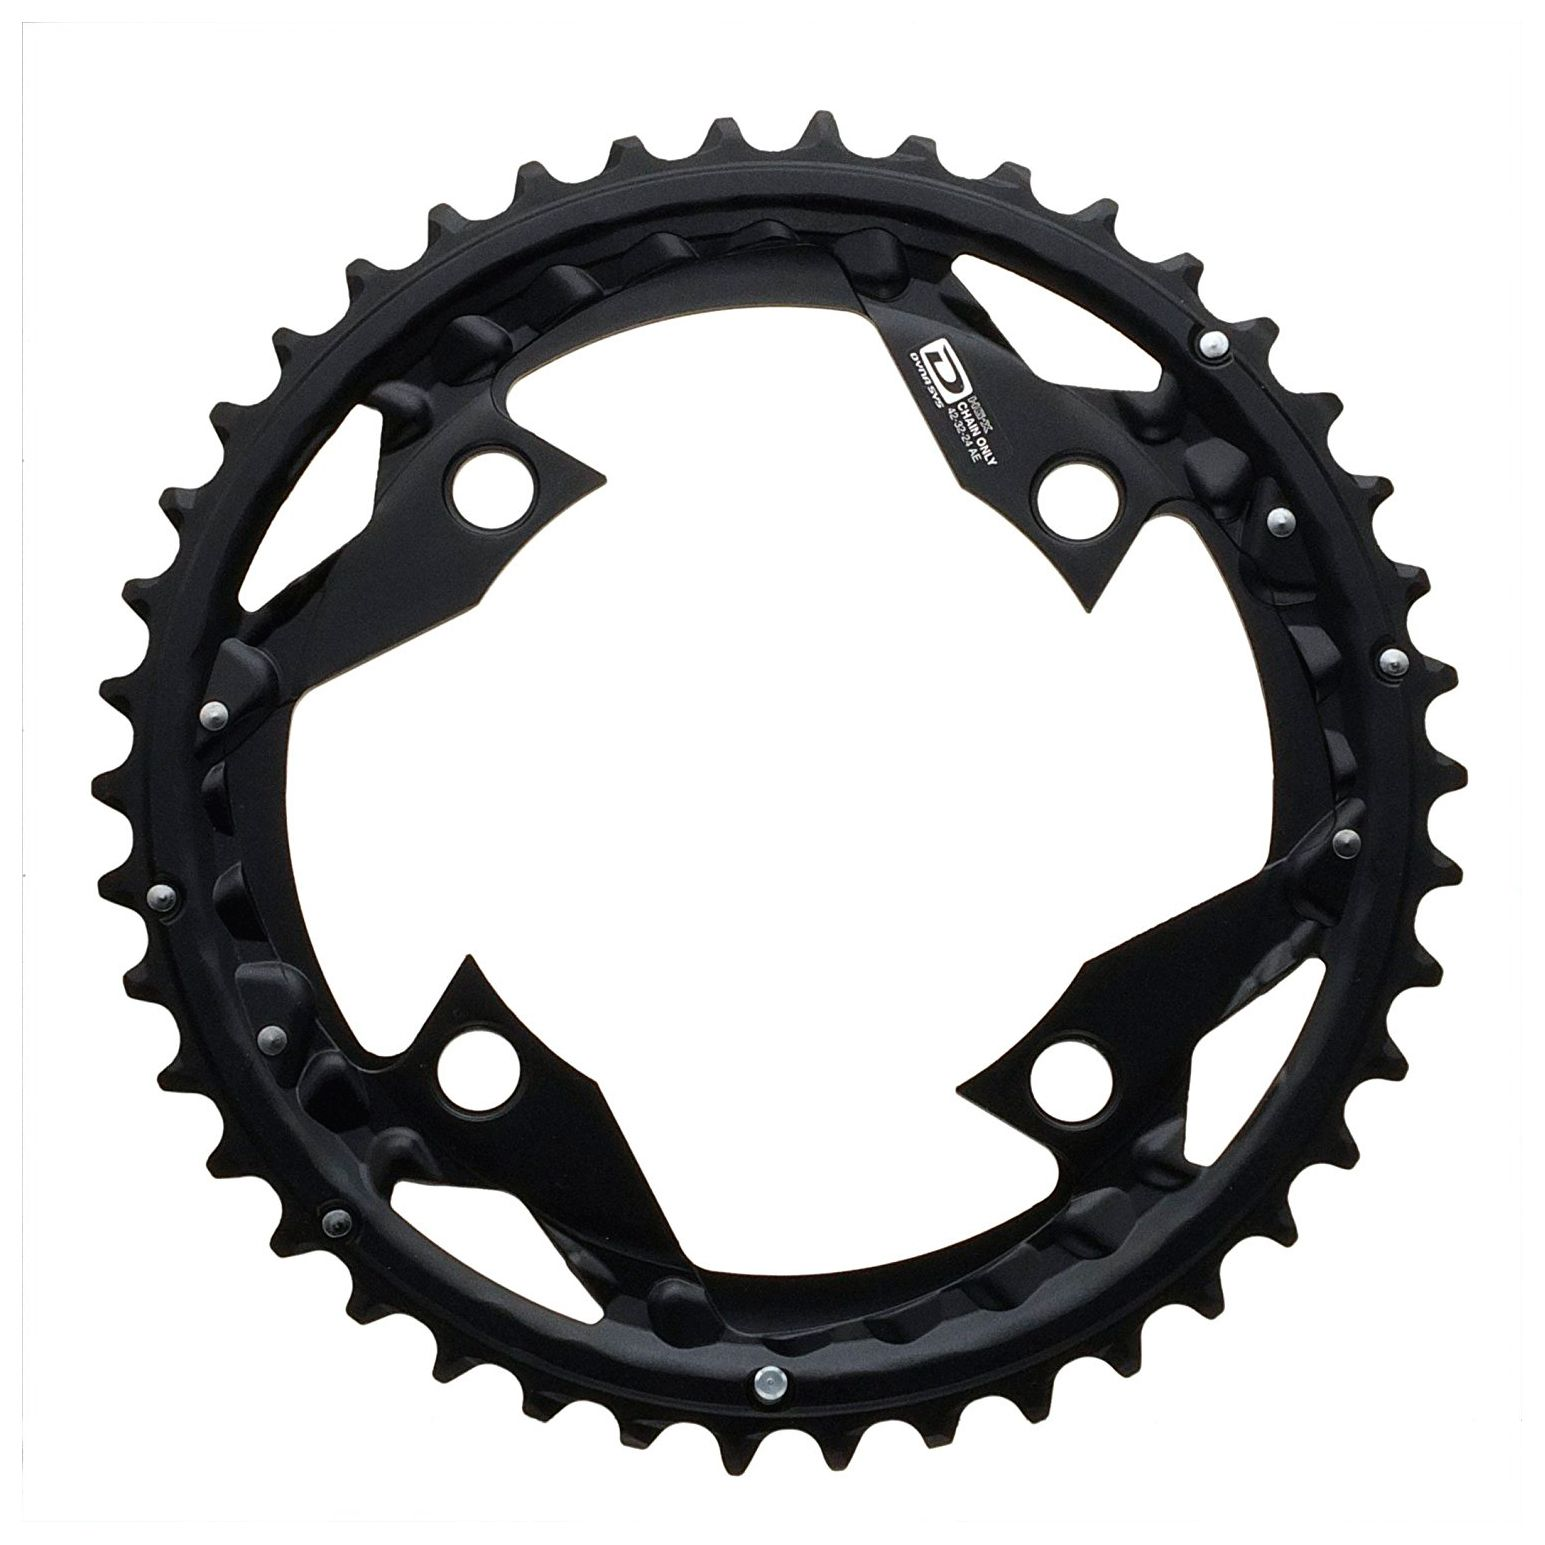 Запчасть Shimano передняя SLX FC-M670, 42T, AE fouriers cr dx004 cnc single chain ring bike bicycle chainrings sprocket 40t 42t for 10s shimano b c d 104mm